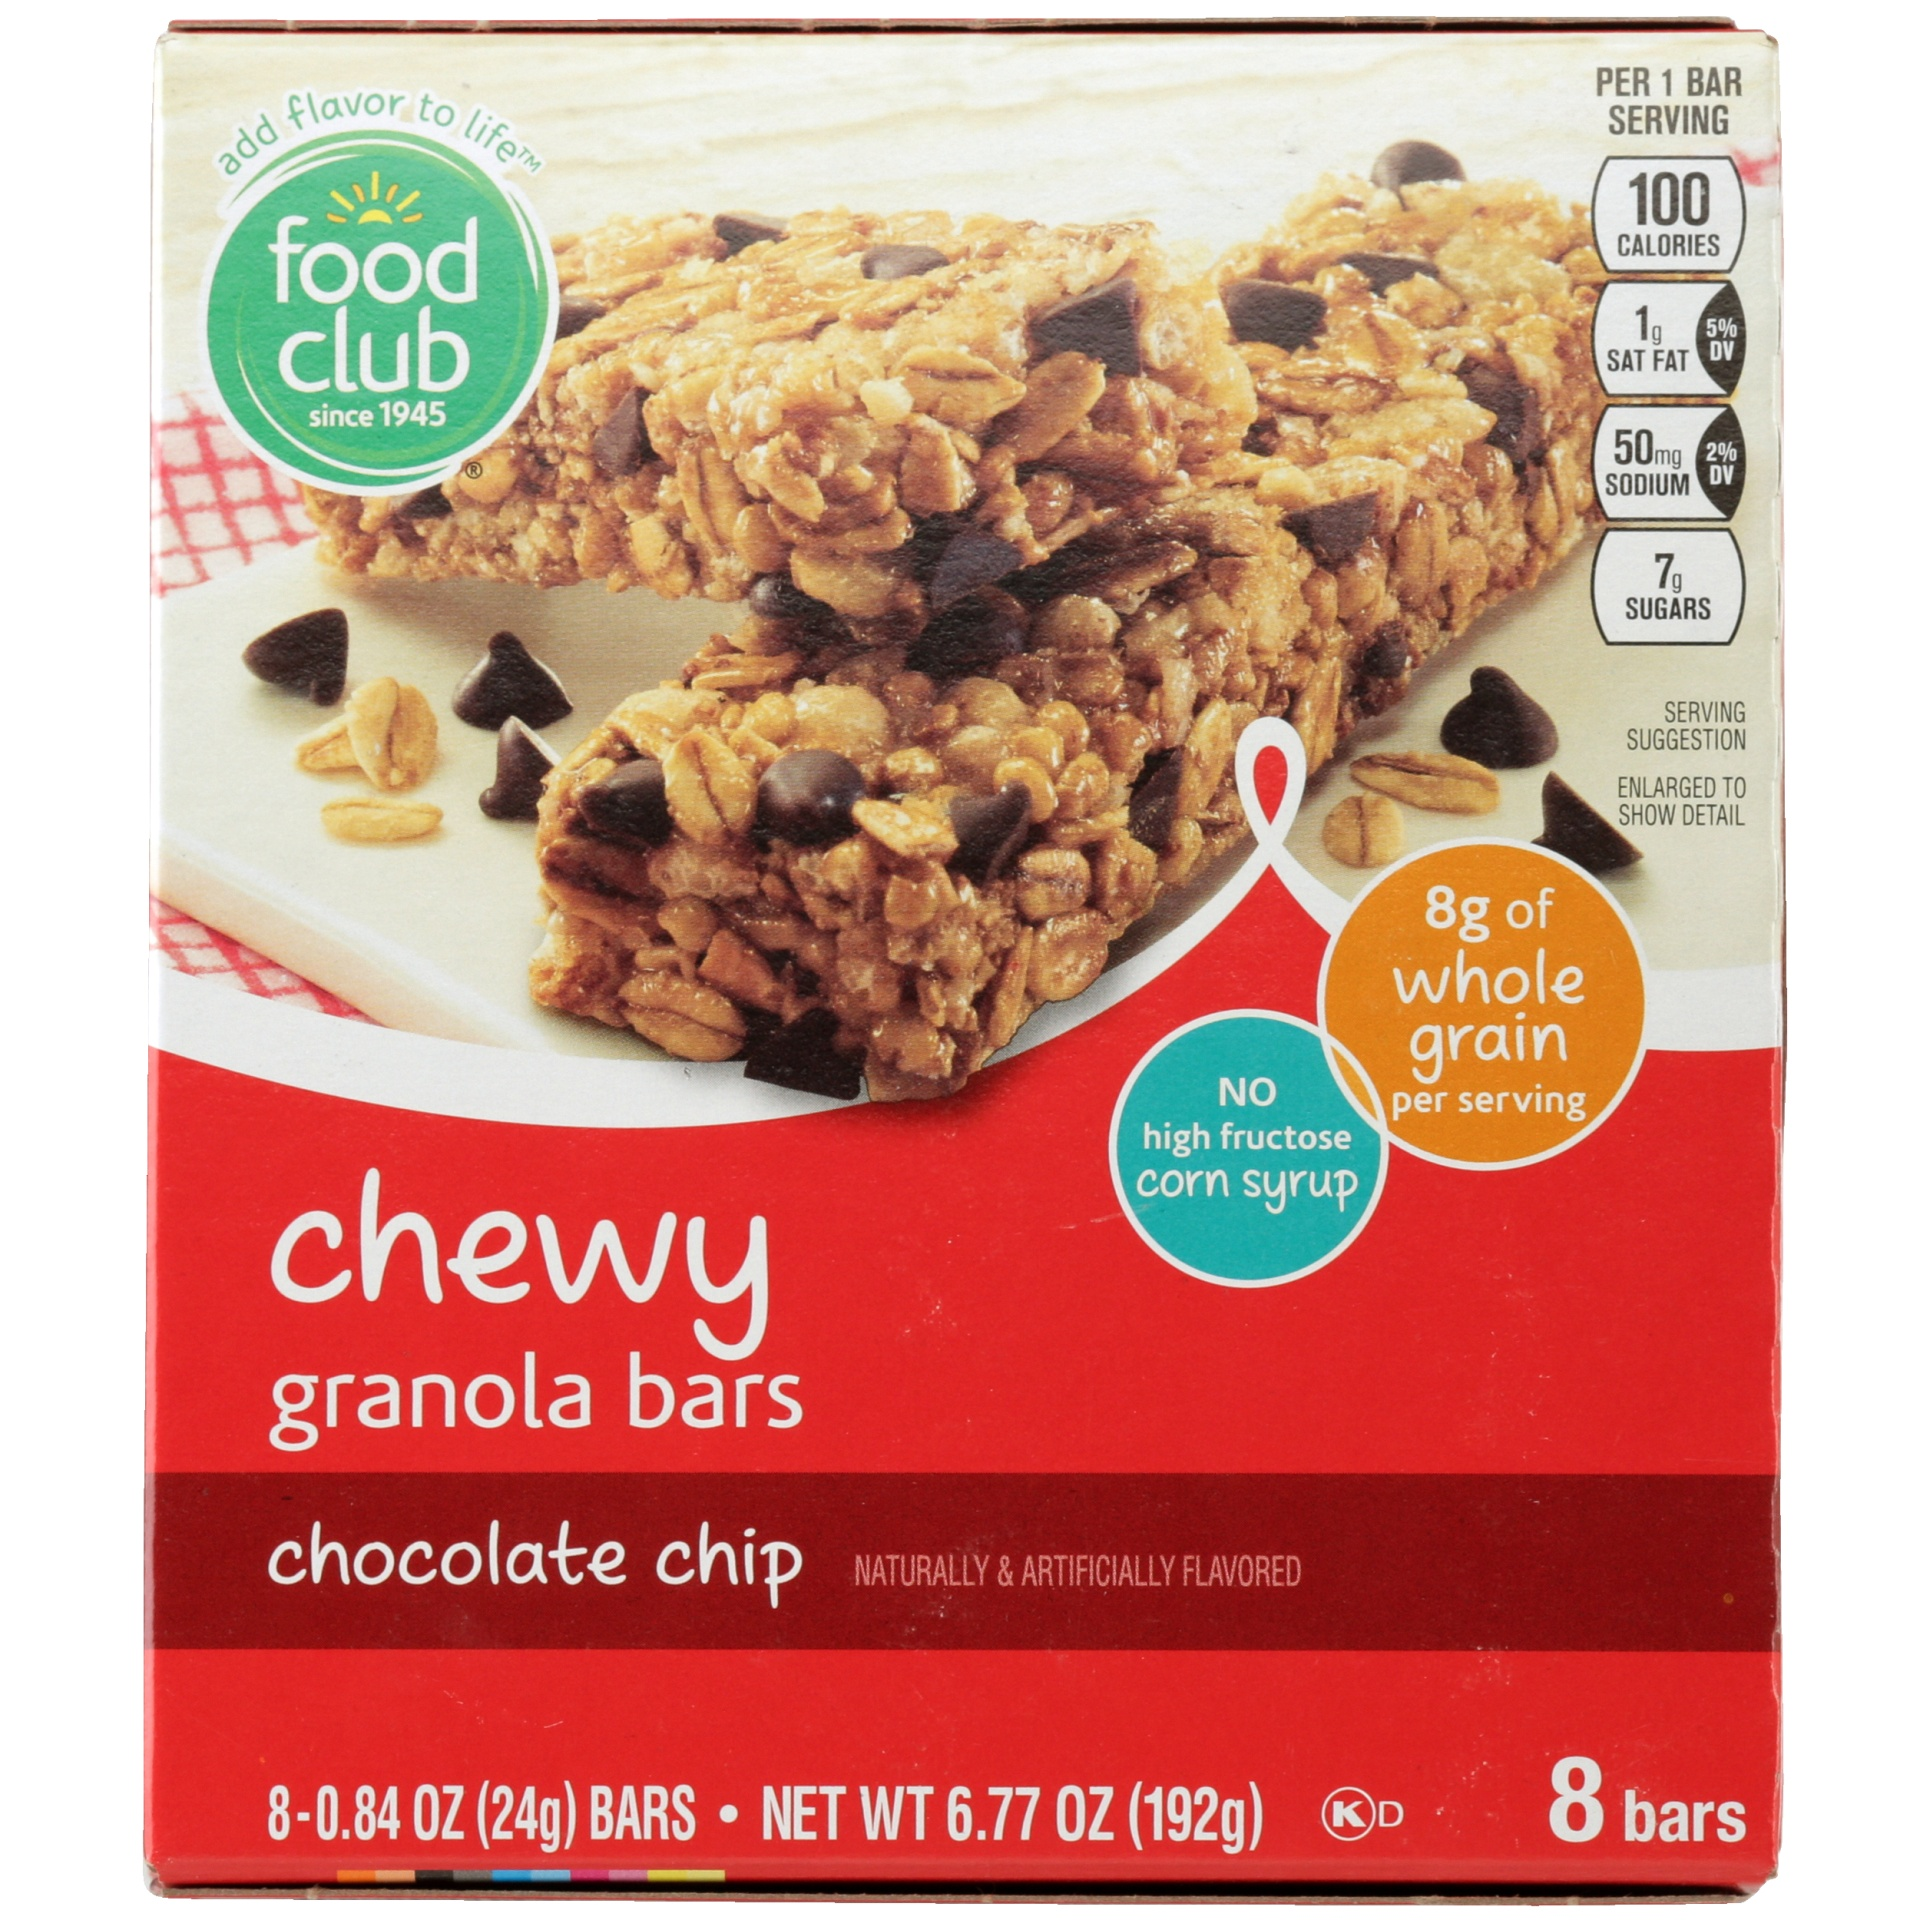 slide 3 of 6, Food Club Chocolate Chip Chewy Granola Bar,